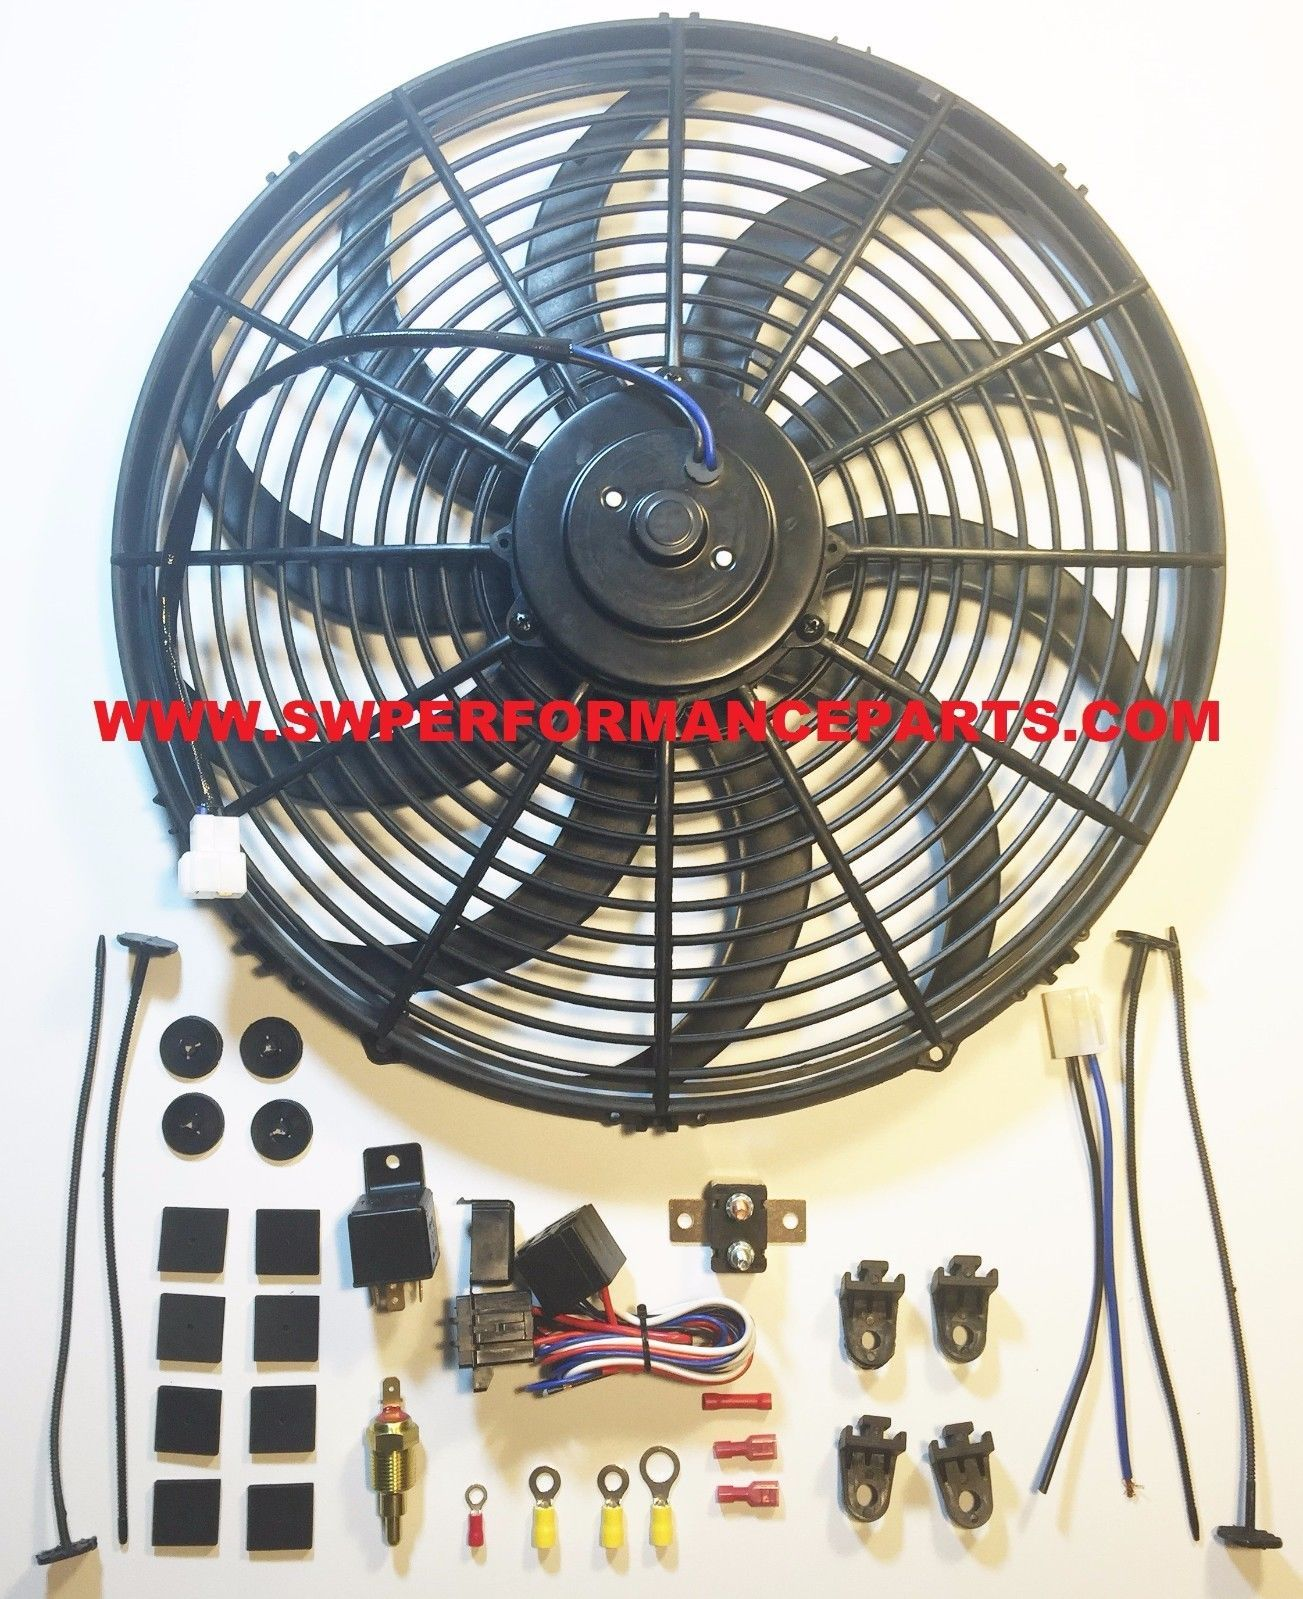 16 Electric Curved Blade Reversible Cooling Fan 12v 3000cfm Thermostat Kit Cooling Fan Electricity Fan